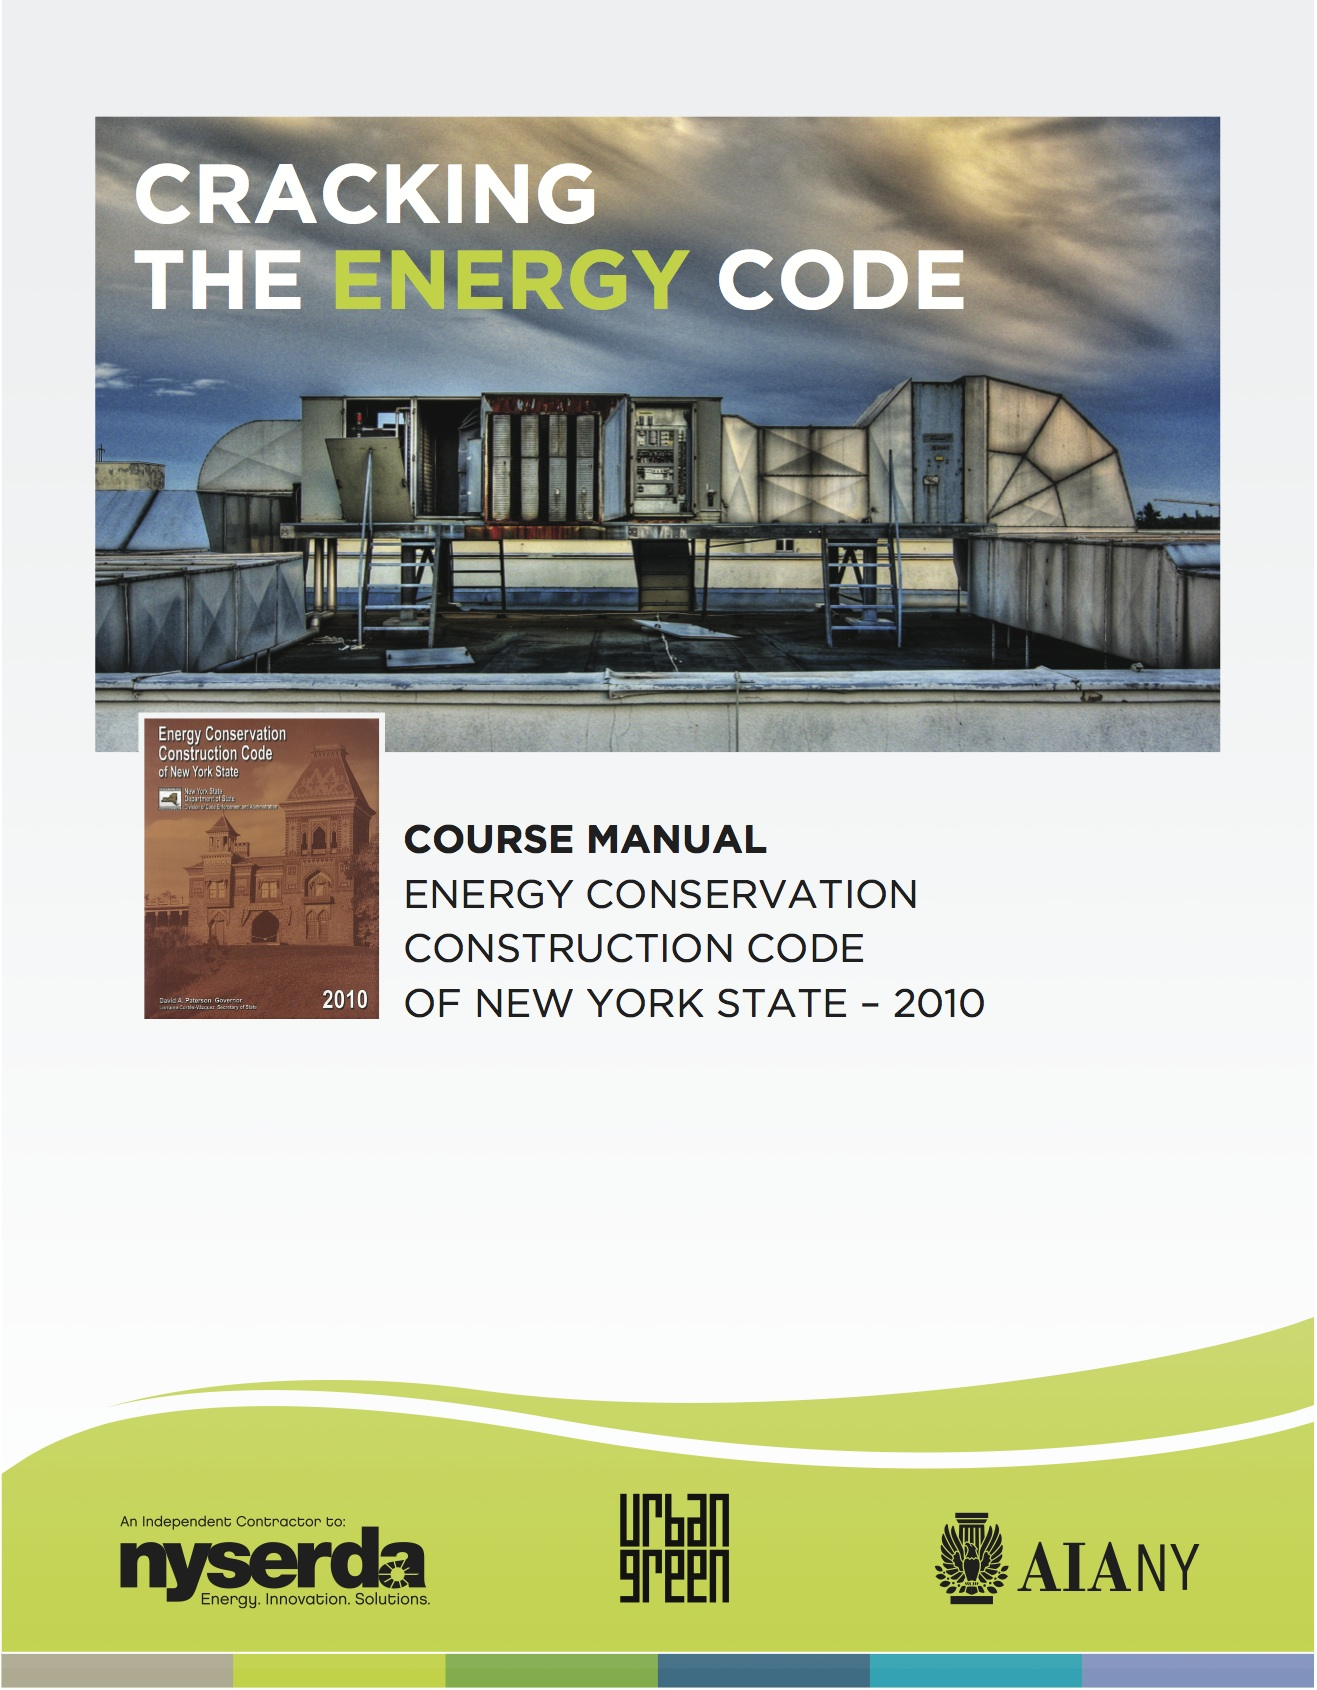 leed certification policy manual images editable certificate template. Black Bedroom Furniture Sets. Home Design Ideas